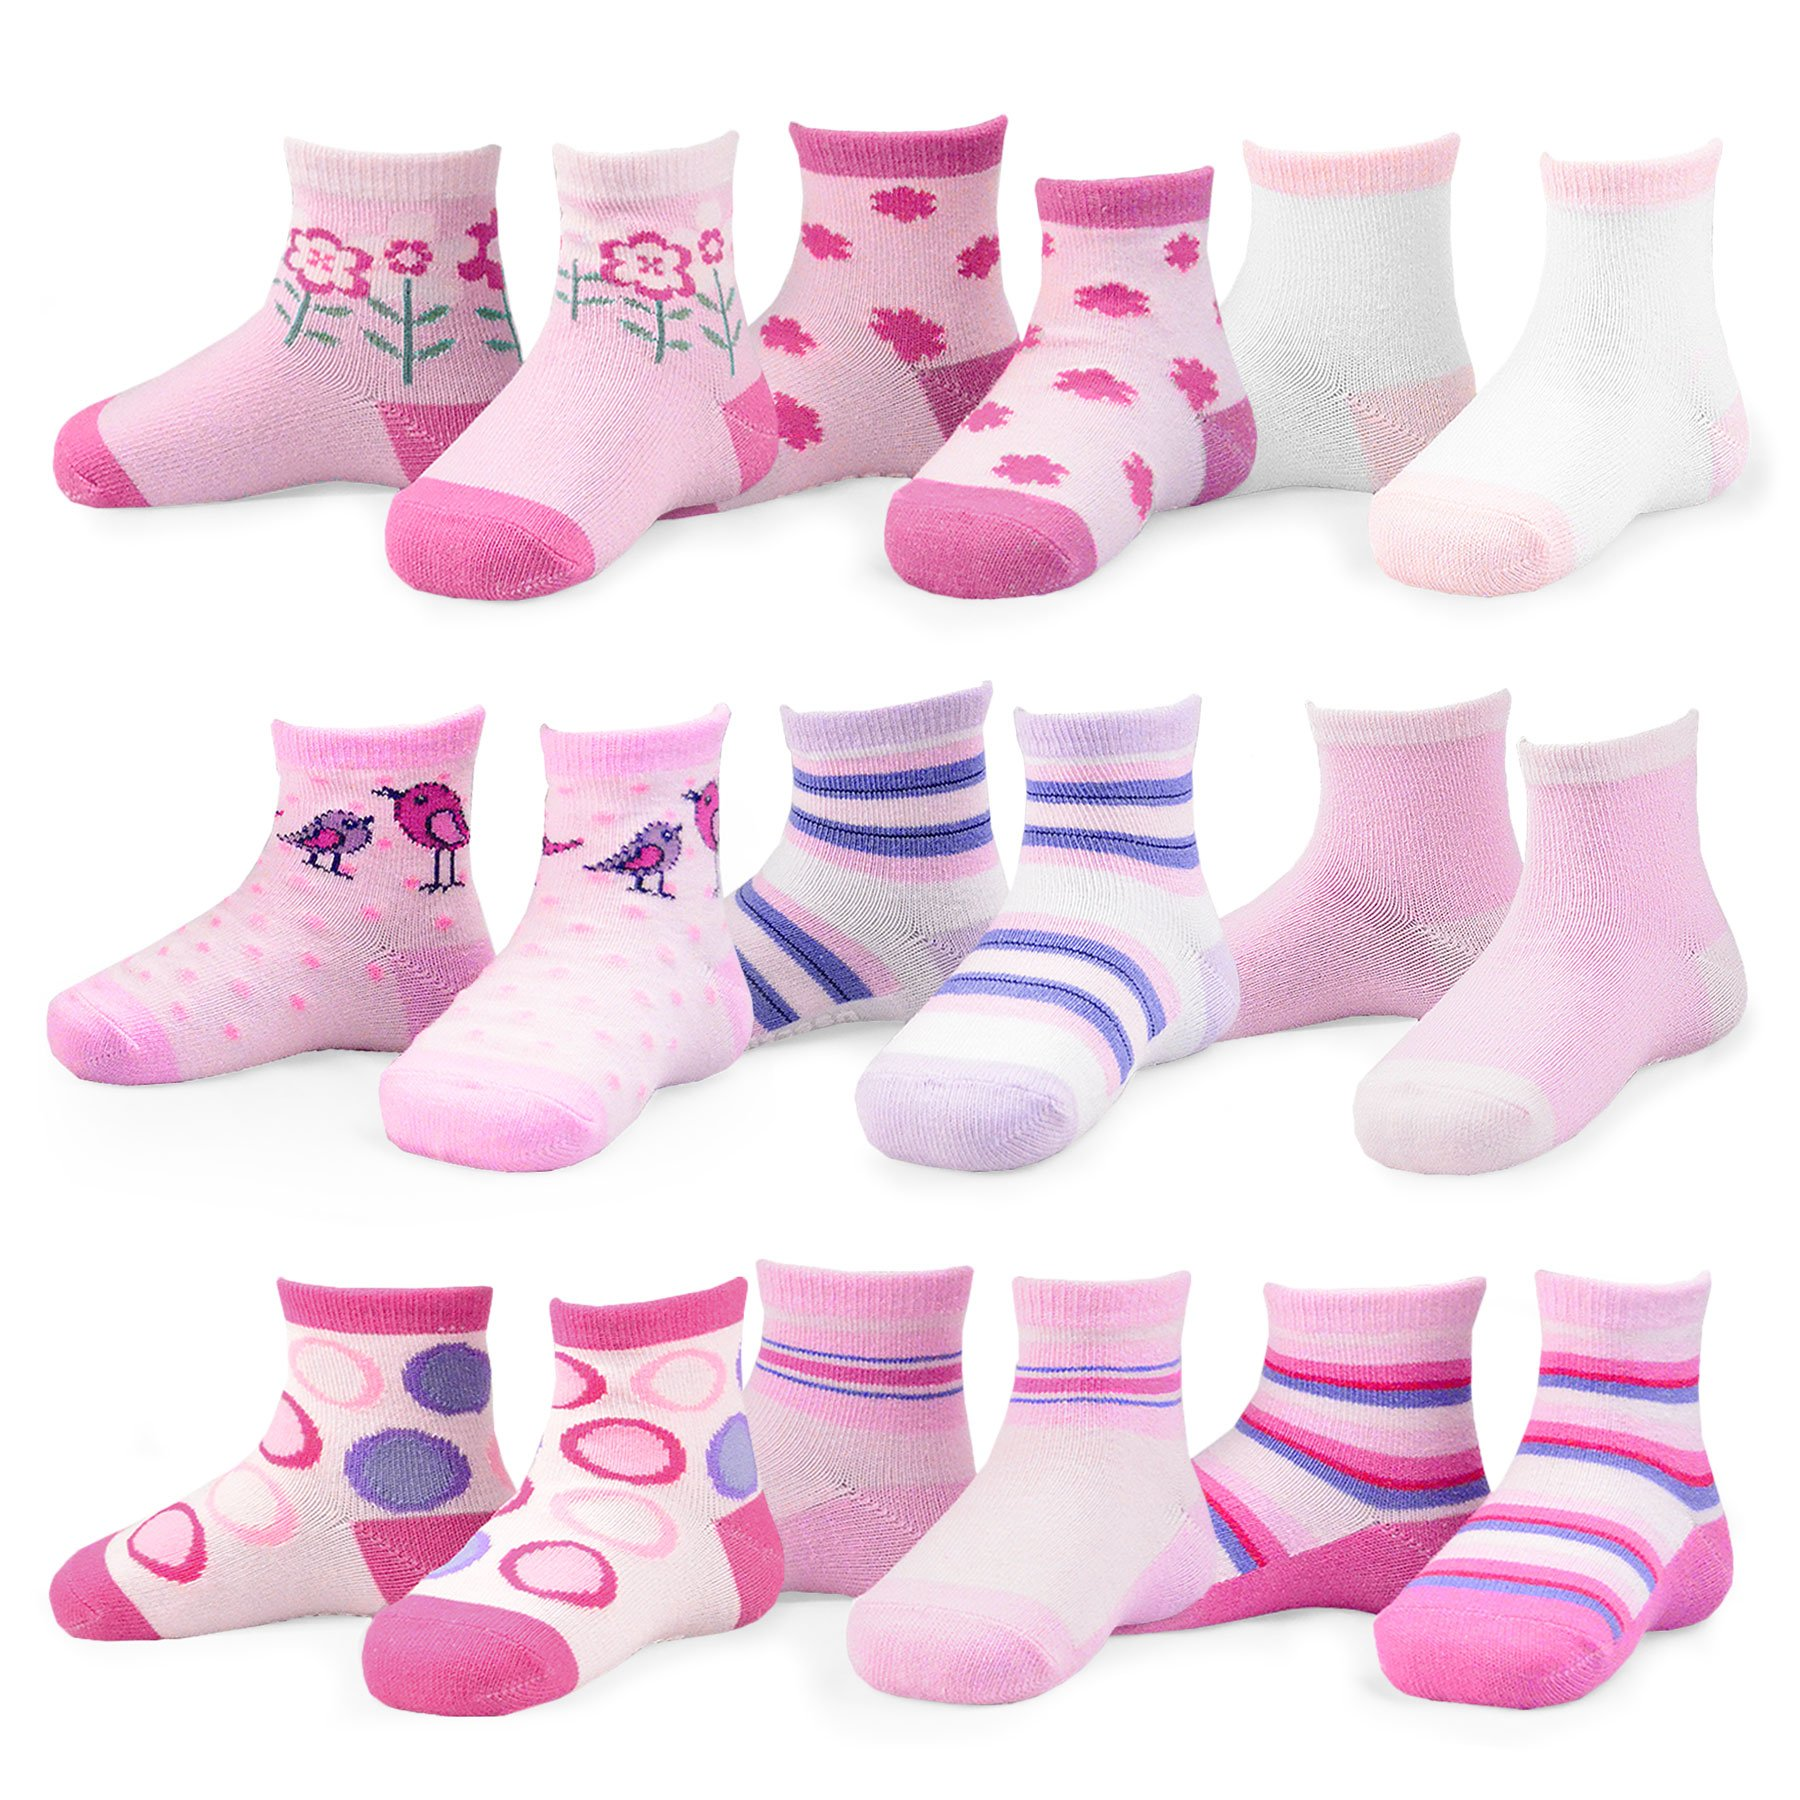 Naartjie Kids Fashion Variety Packs - 9 Or 18 Pairs Girls 9 Pairs 6-12 Months 8